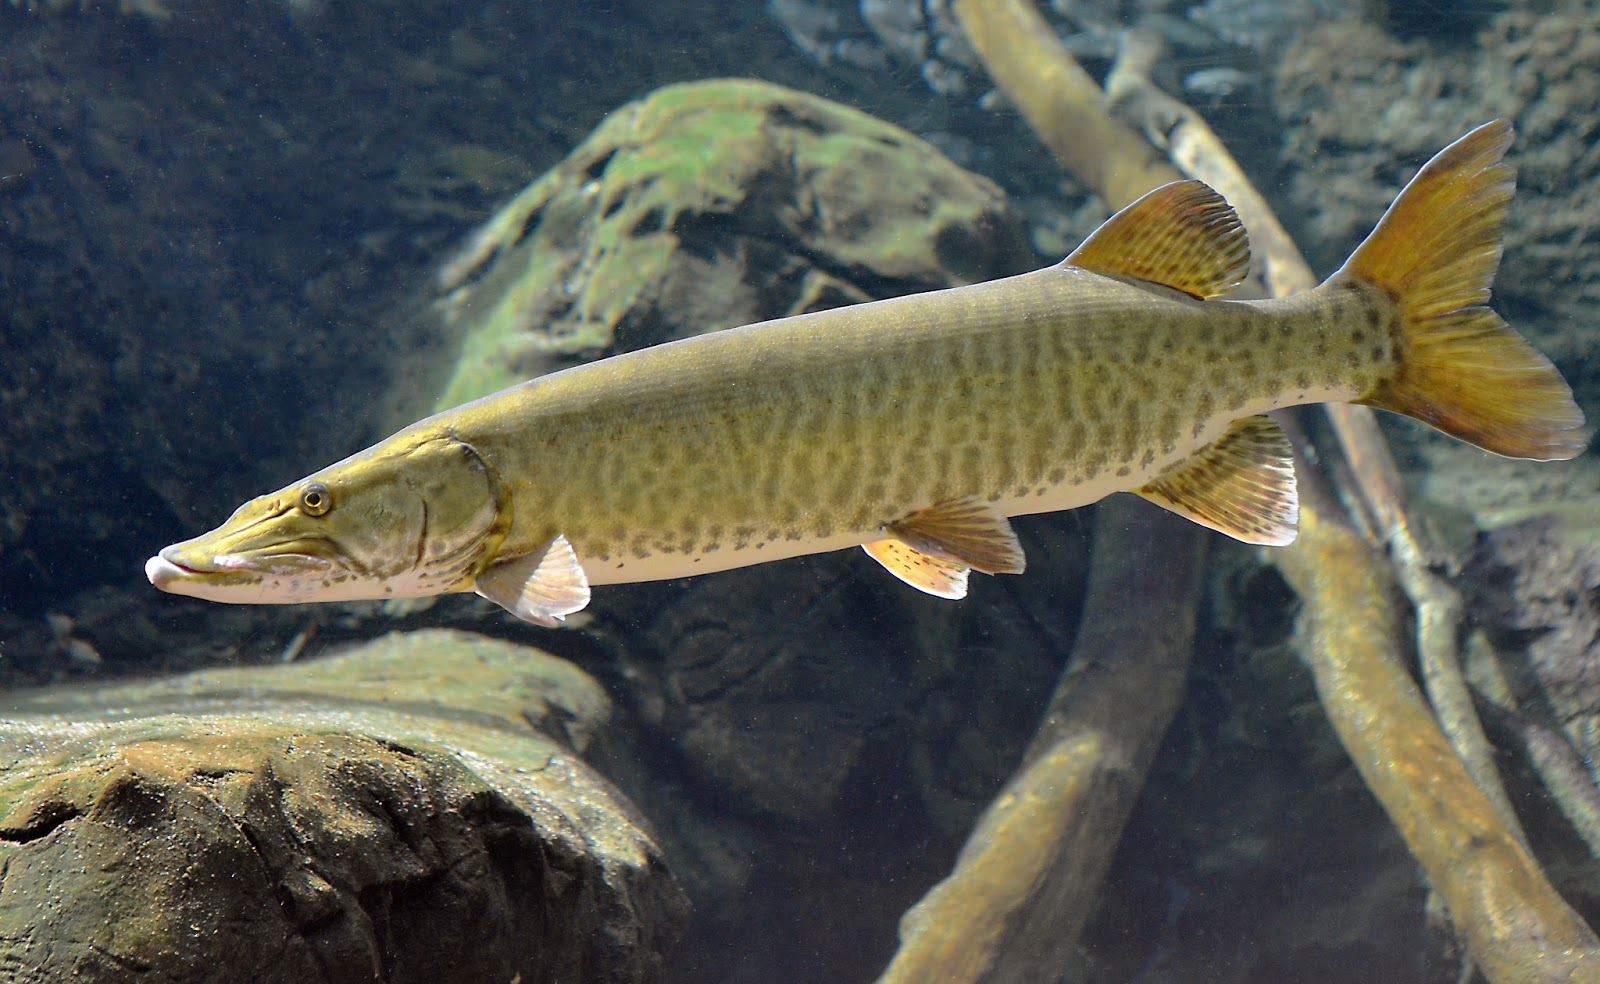 Virginia fishes new muskellunge esox masquinongy for Muskie fish pictures